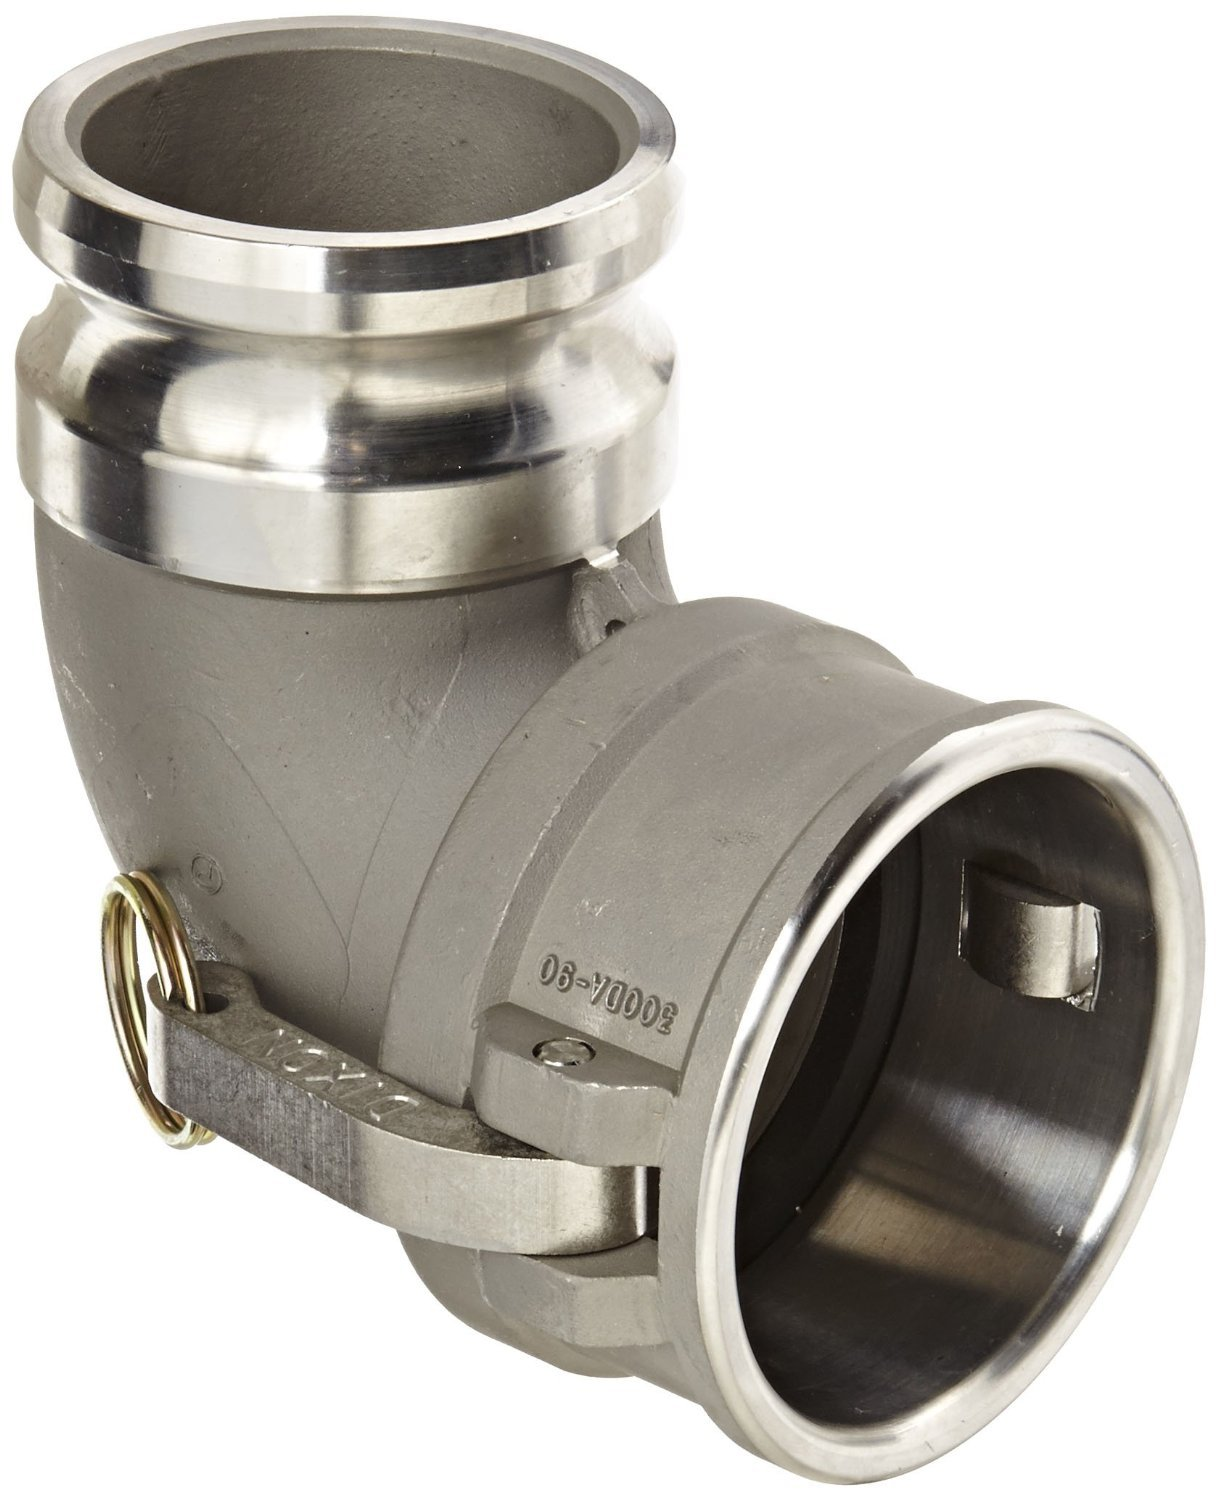 Dixon 300DA-90SS Stainless Steel 316 Cam and Groove Hose Fitting, 90 Degree Elbow, 3'' Plug x 3'' Socket